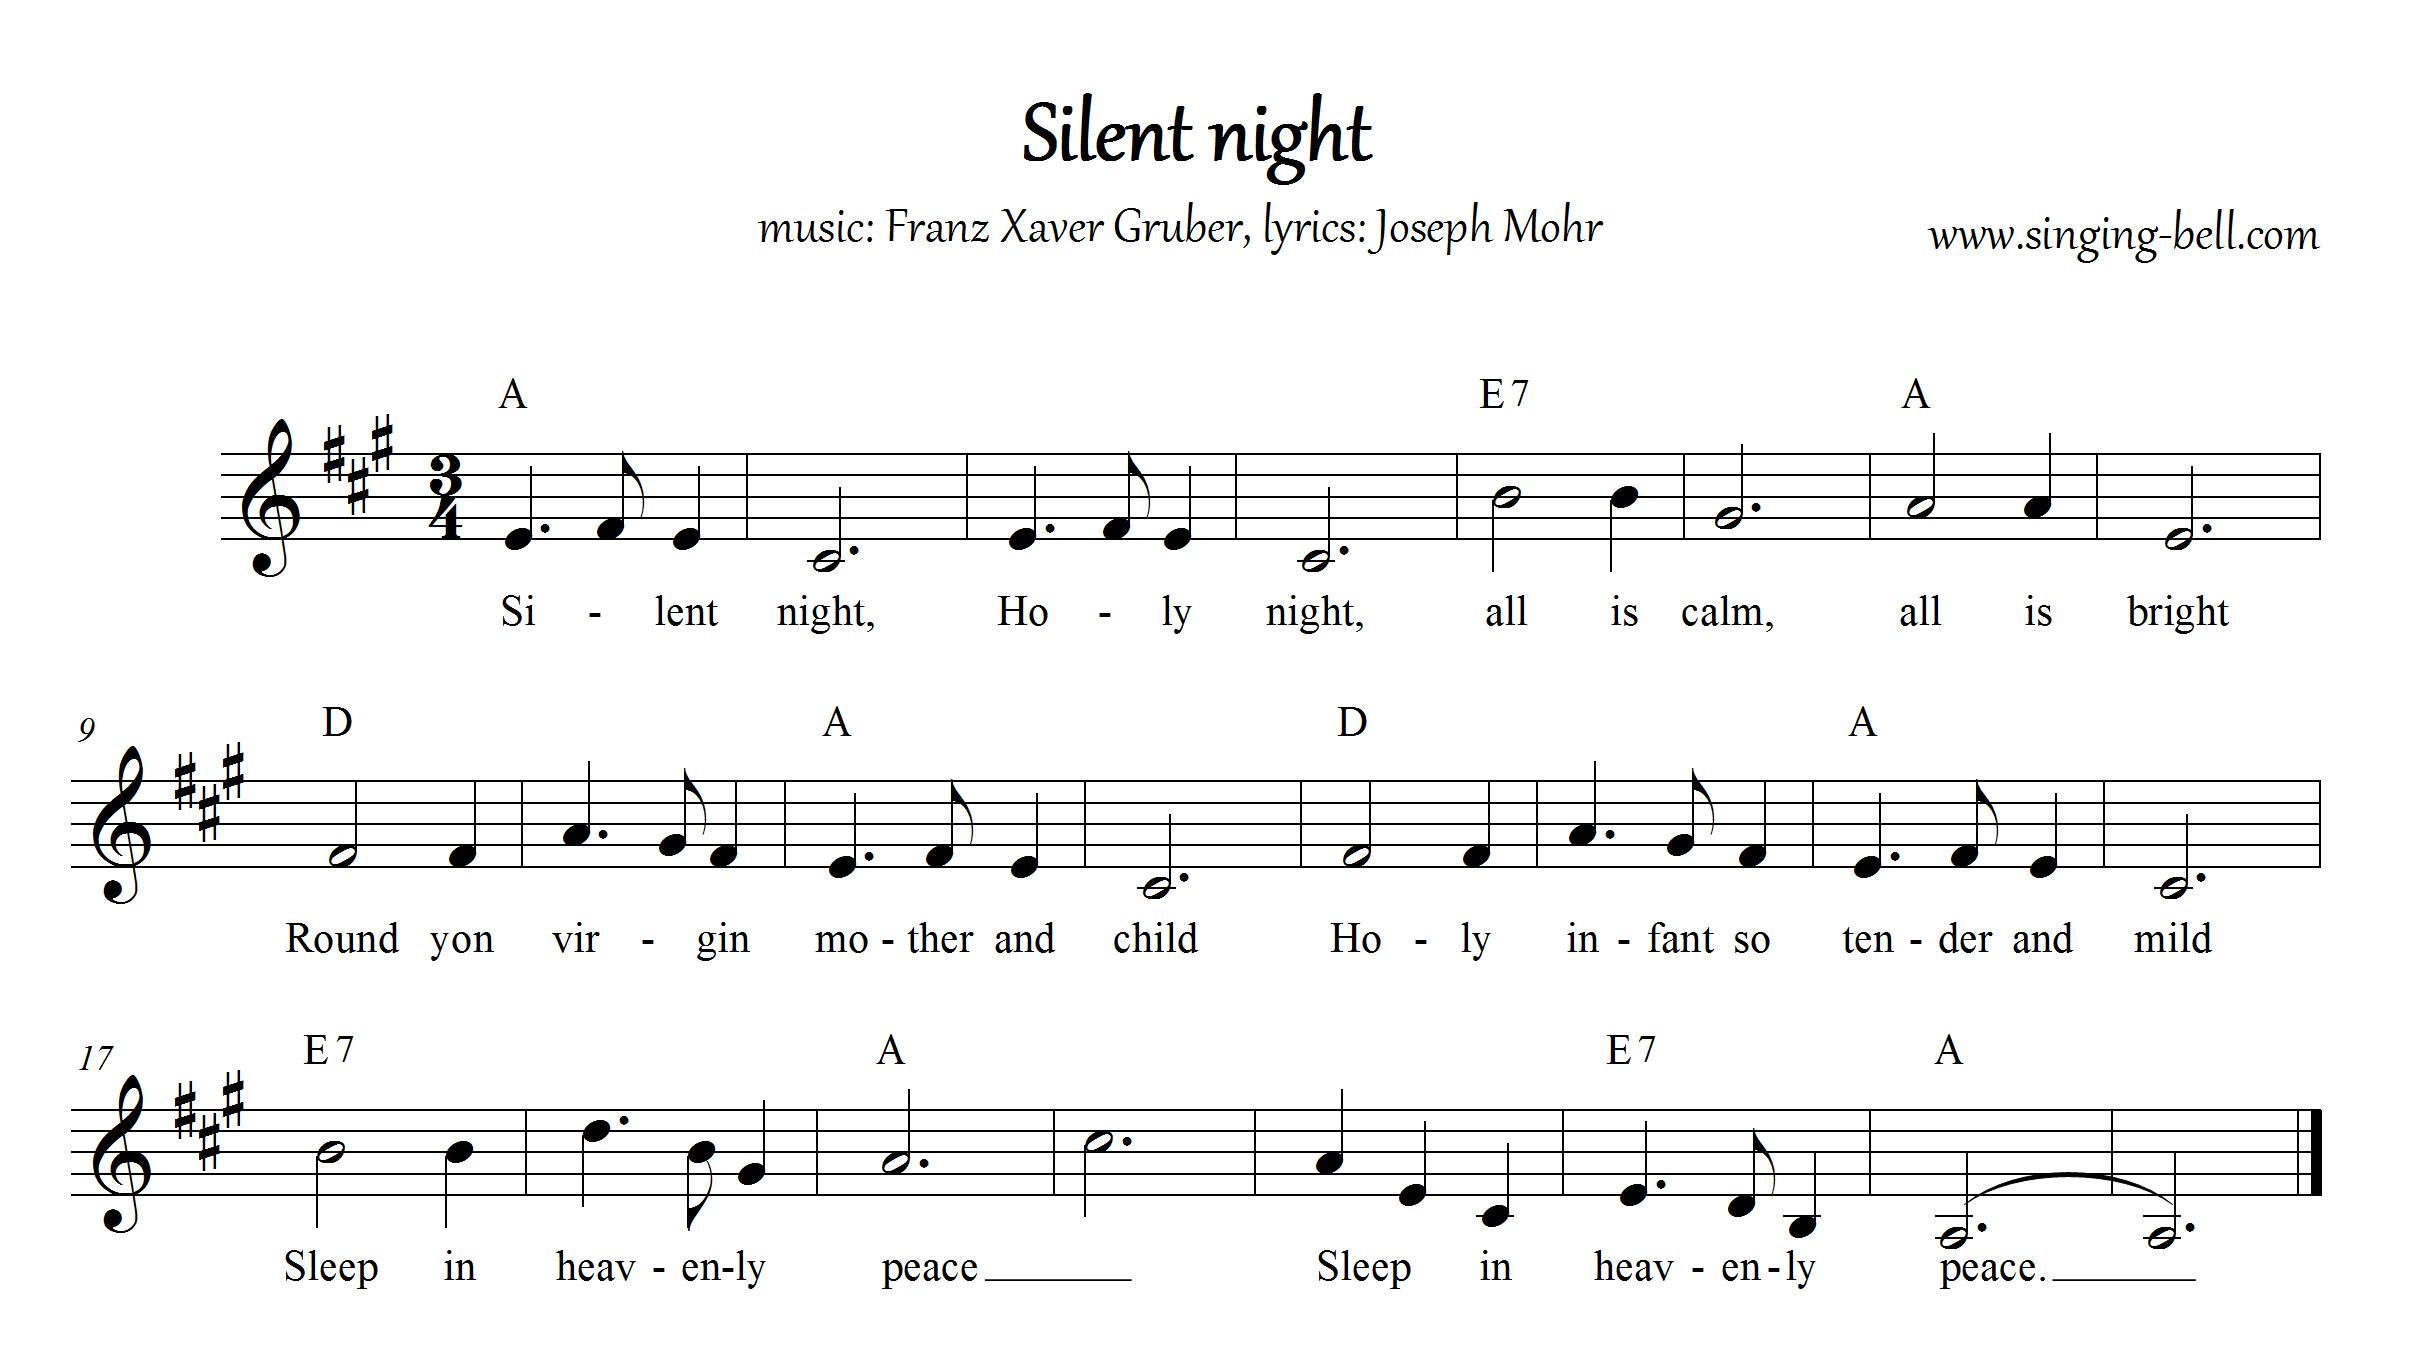 Free christmas carols gt silent night free mp3 audio song download